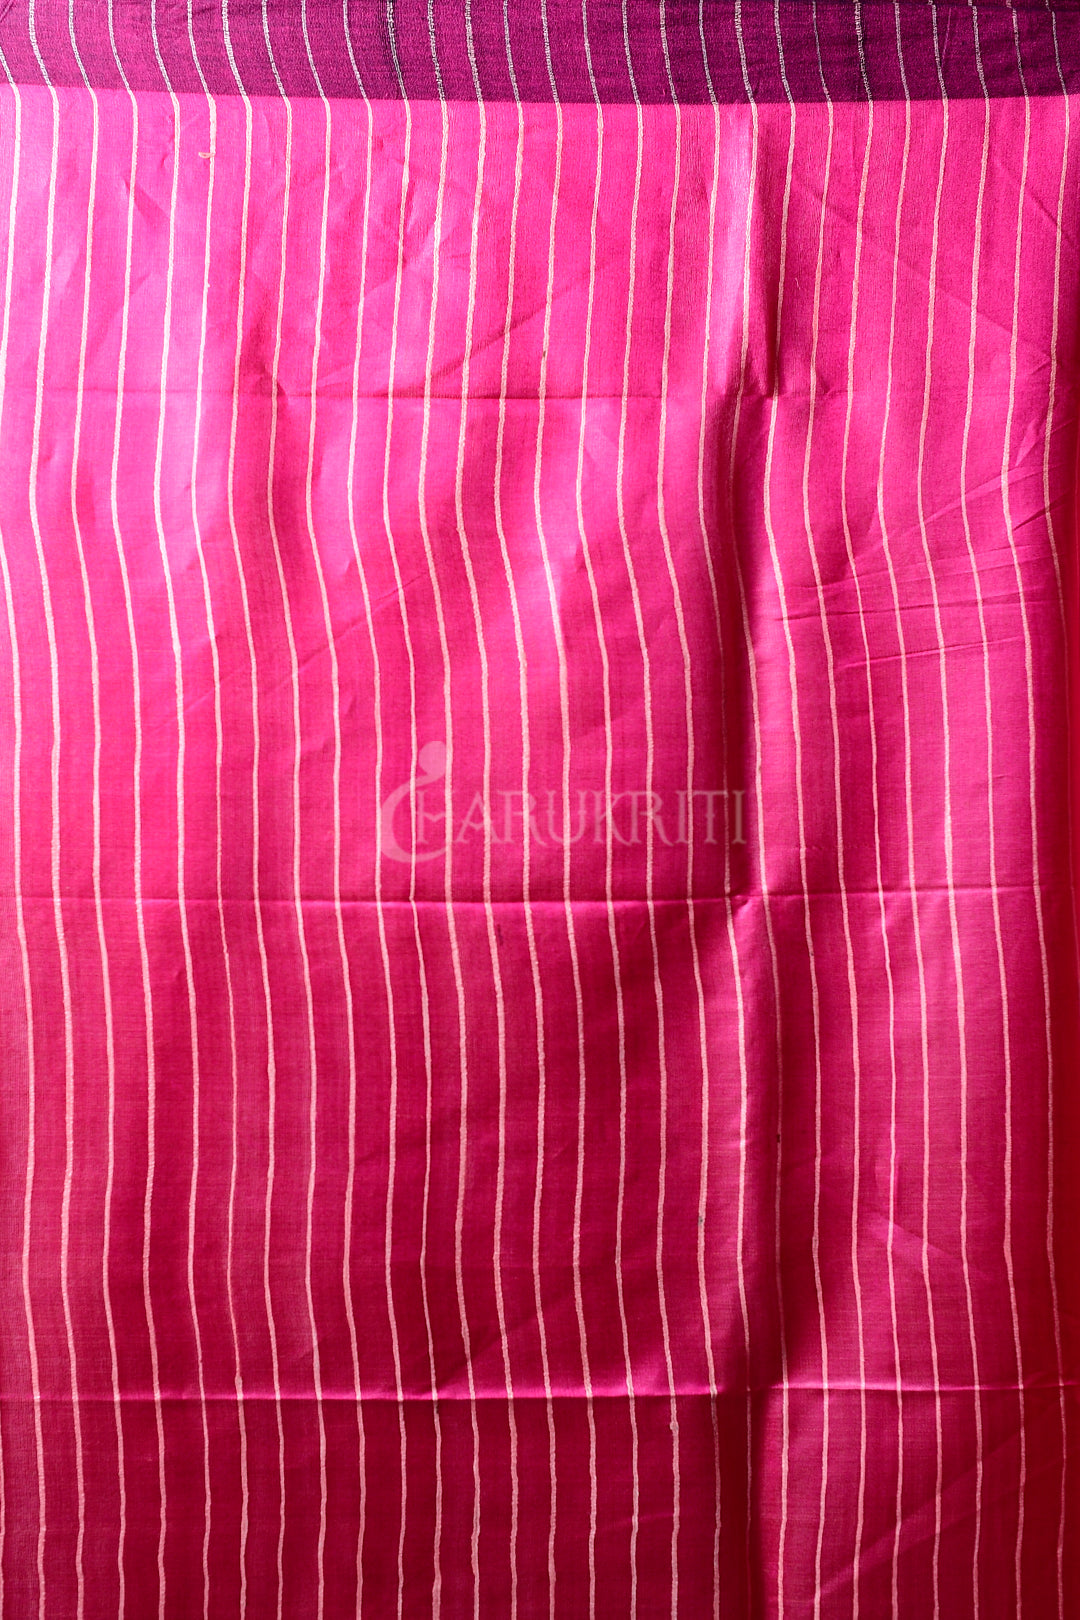 PINK GHEECHA SAREE WITH PEARL PINK PALLU